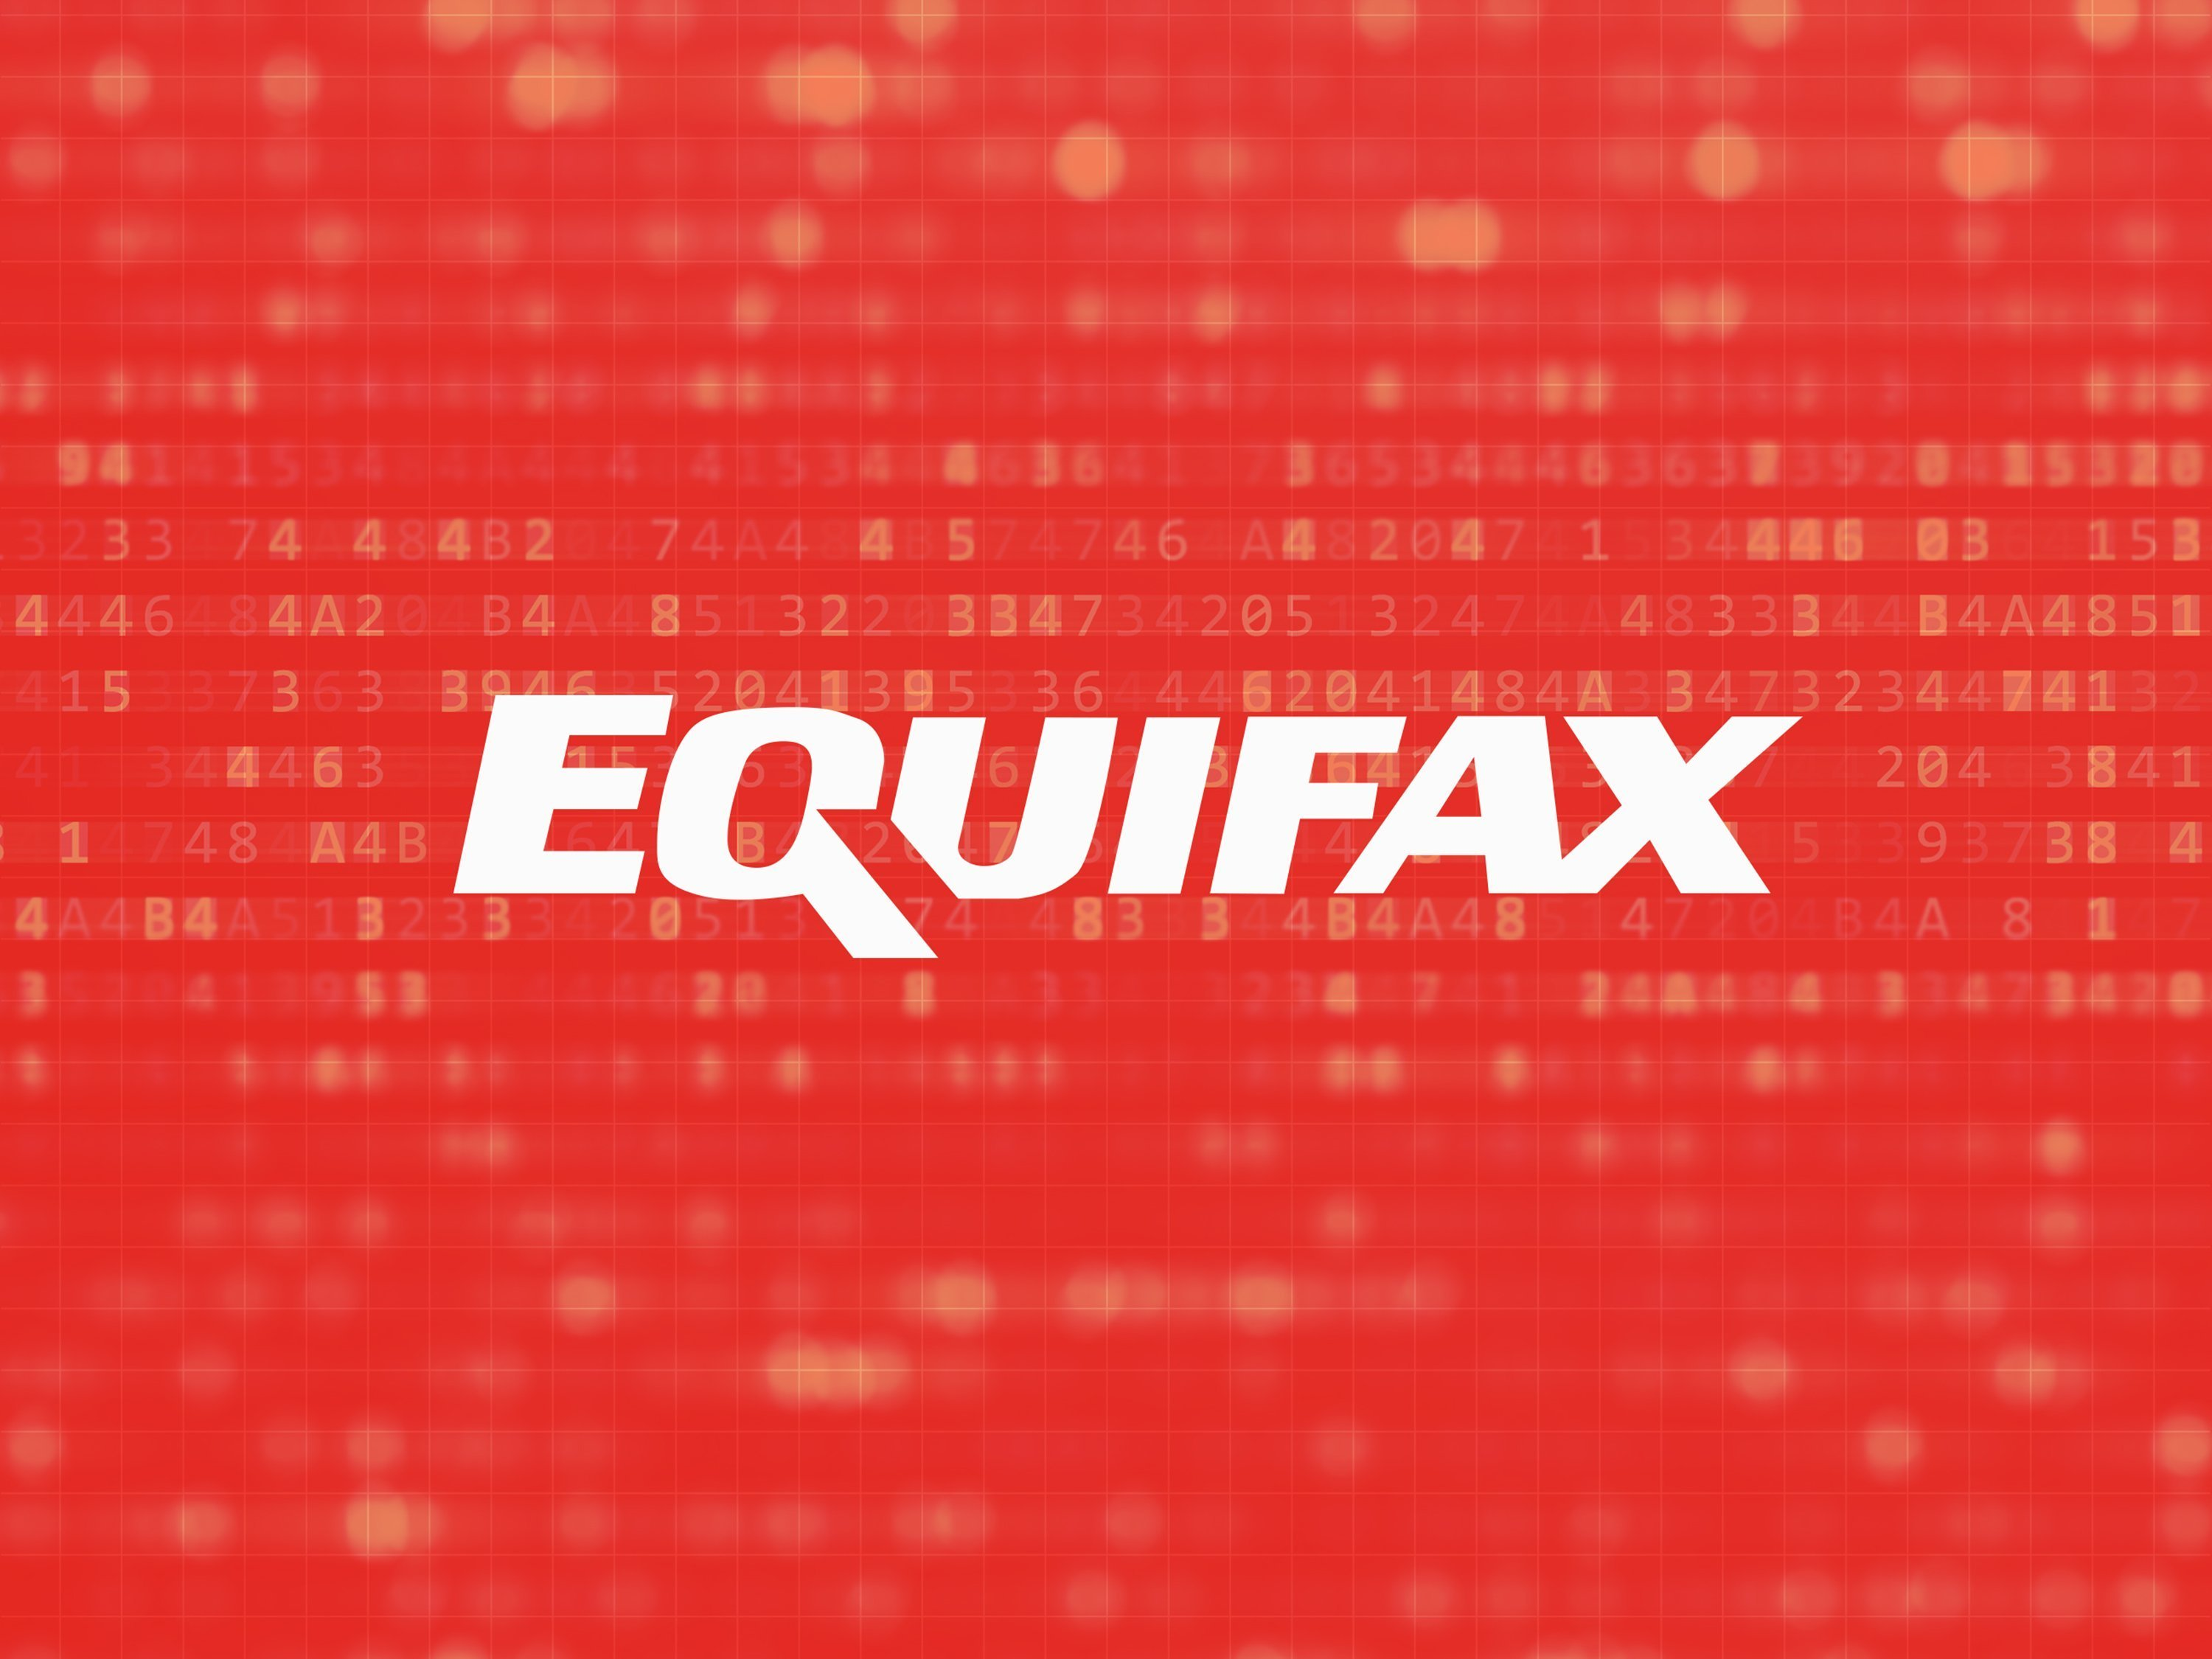 An update in the Equifax hack and how Chicago is becoming involved